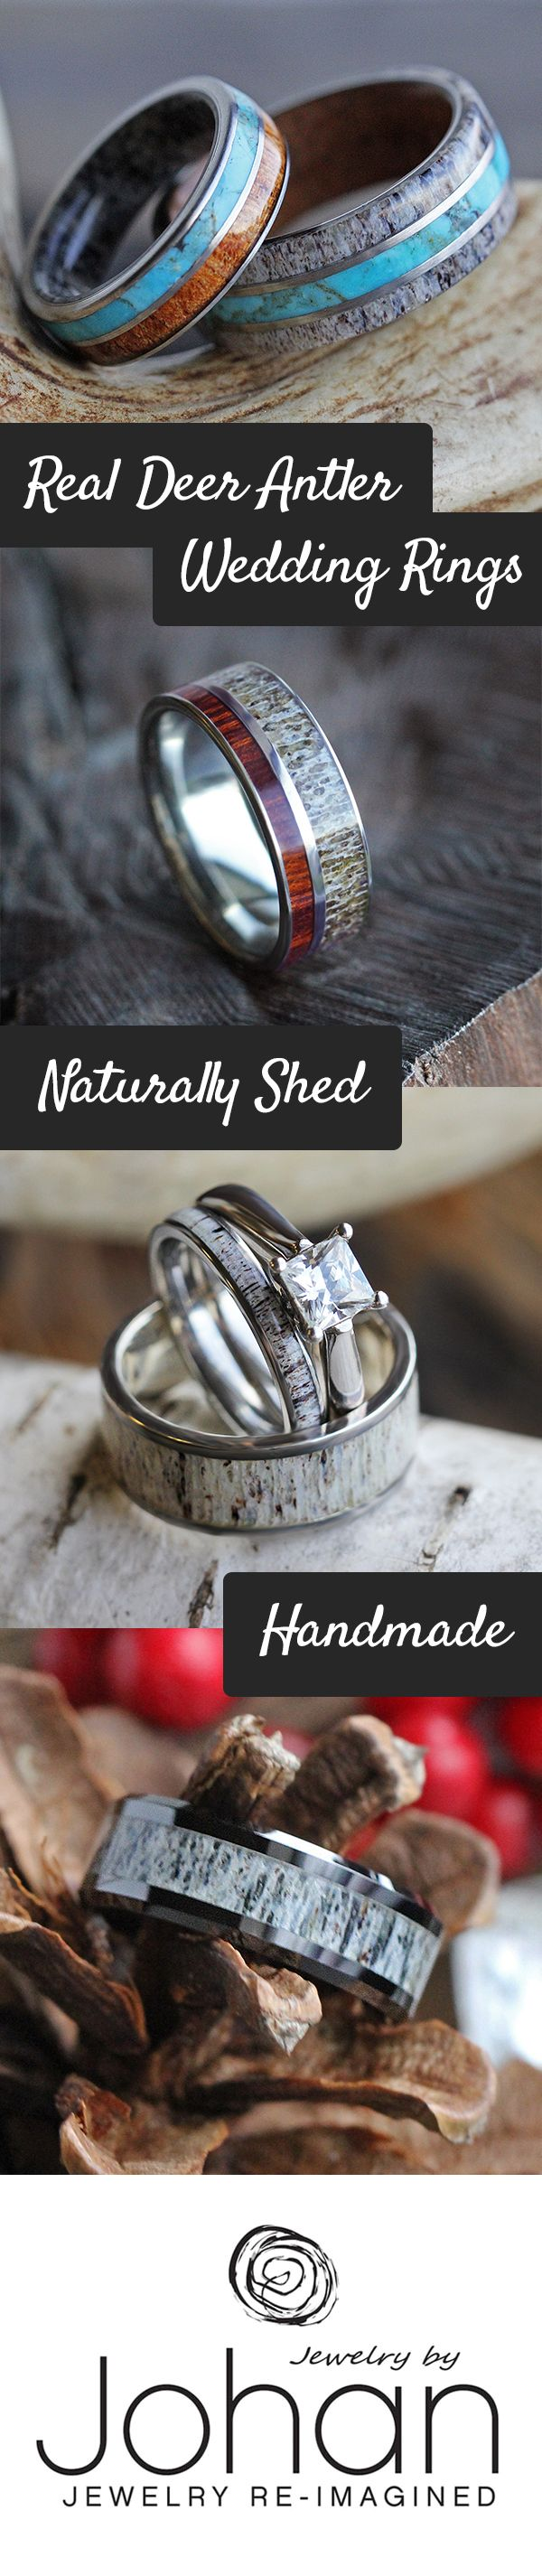 natural deer antler wedding rings - perfect for outdoor